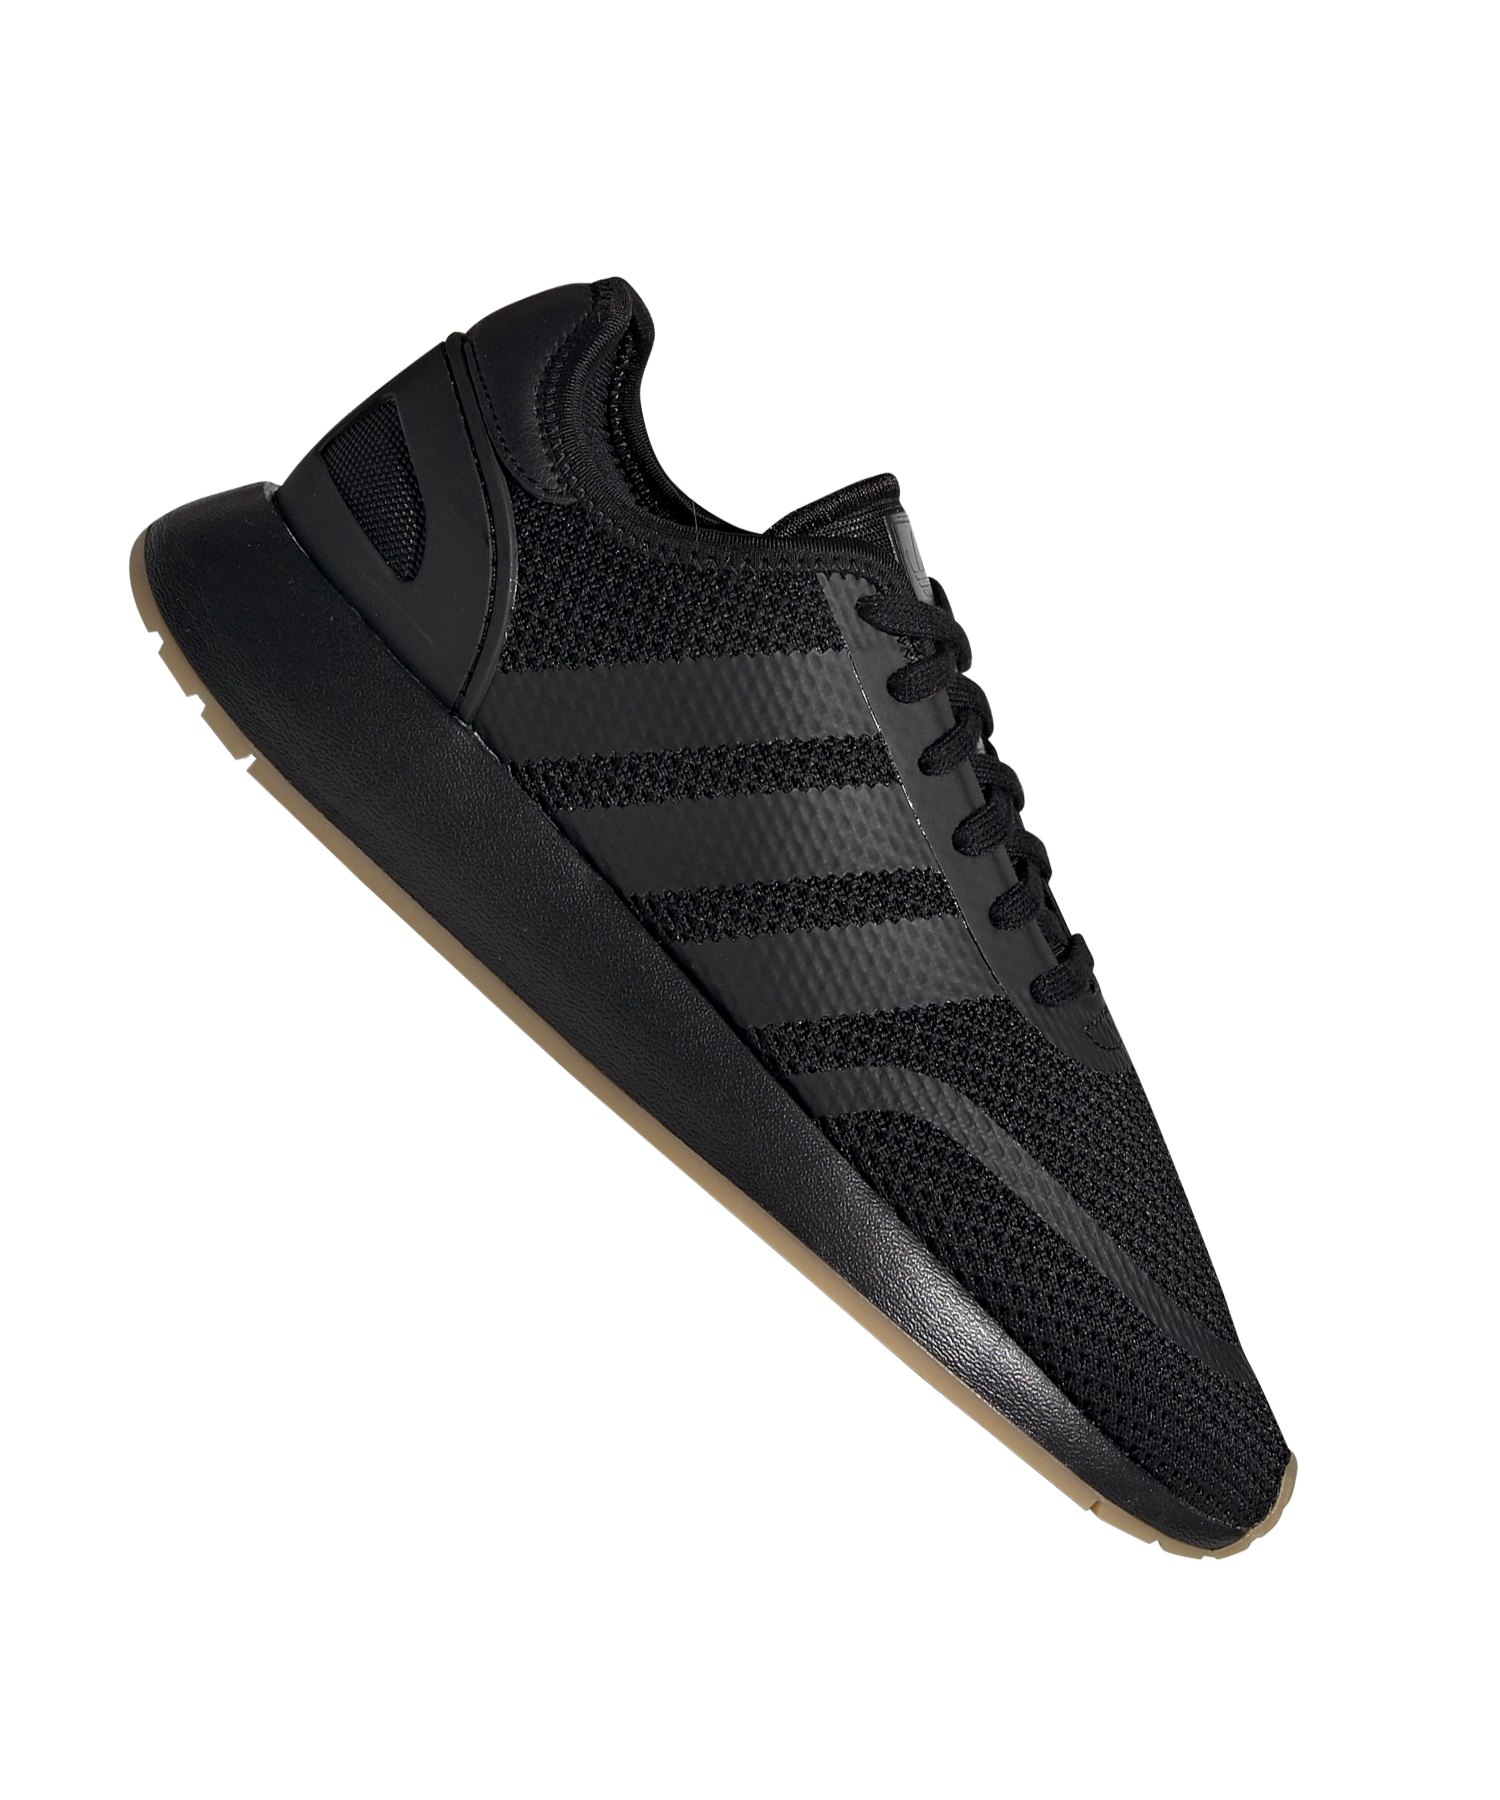 jogginghose adidas, Sneakers Adidas Shop Herren Performance